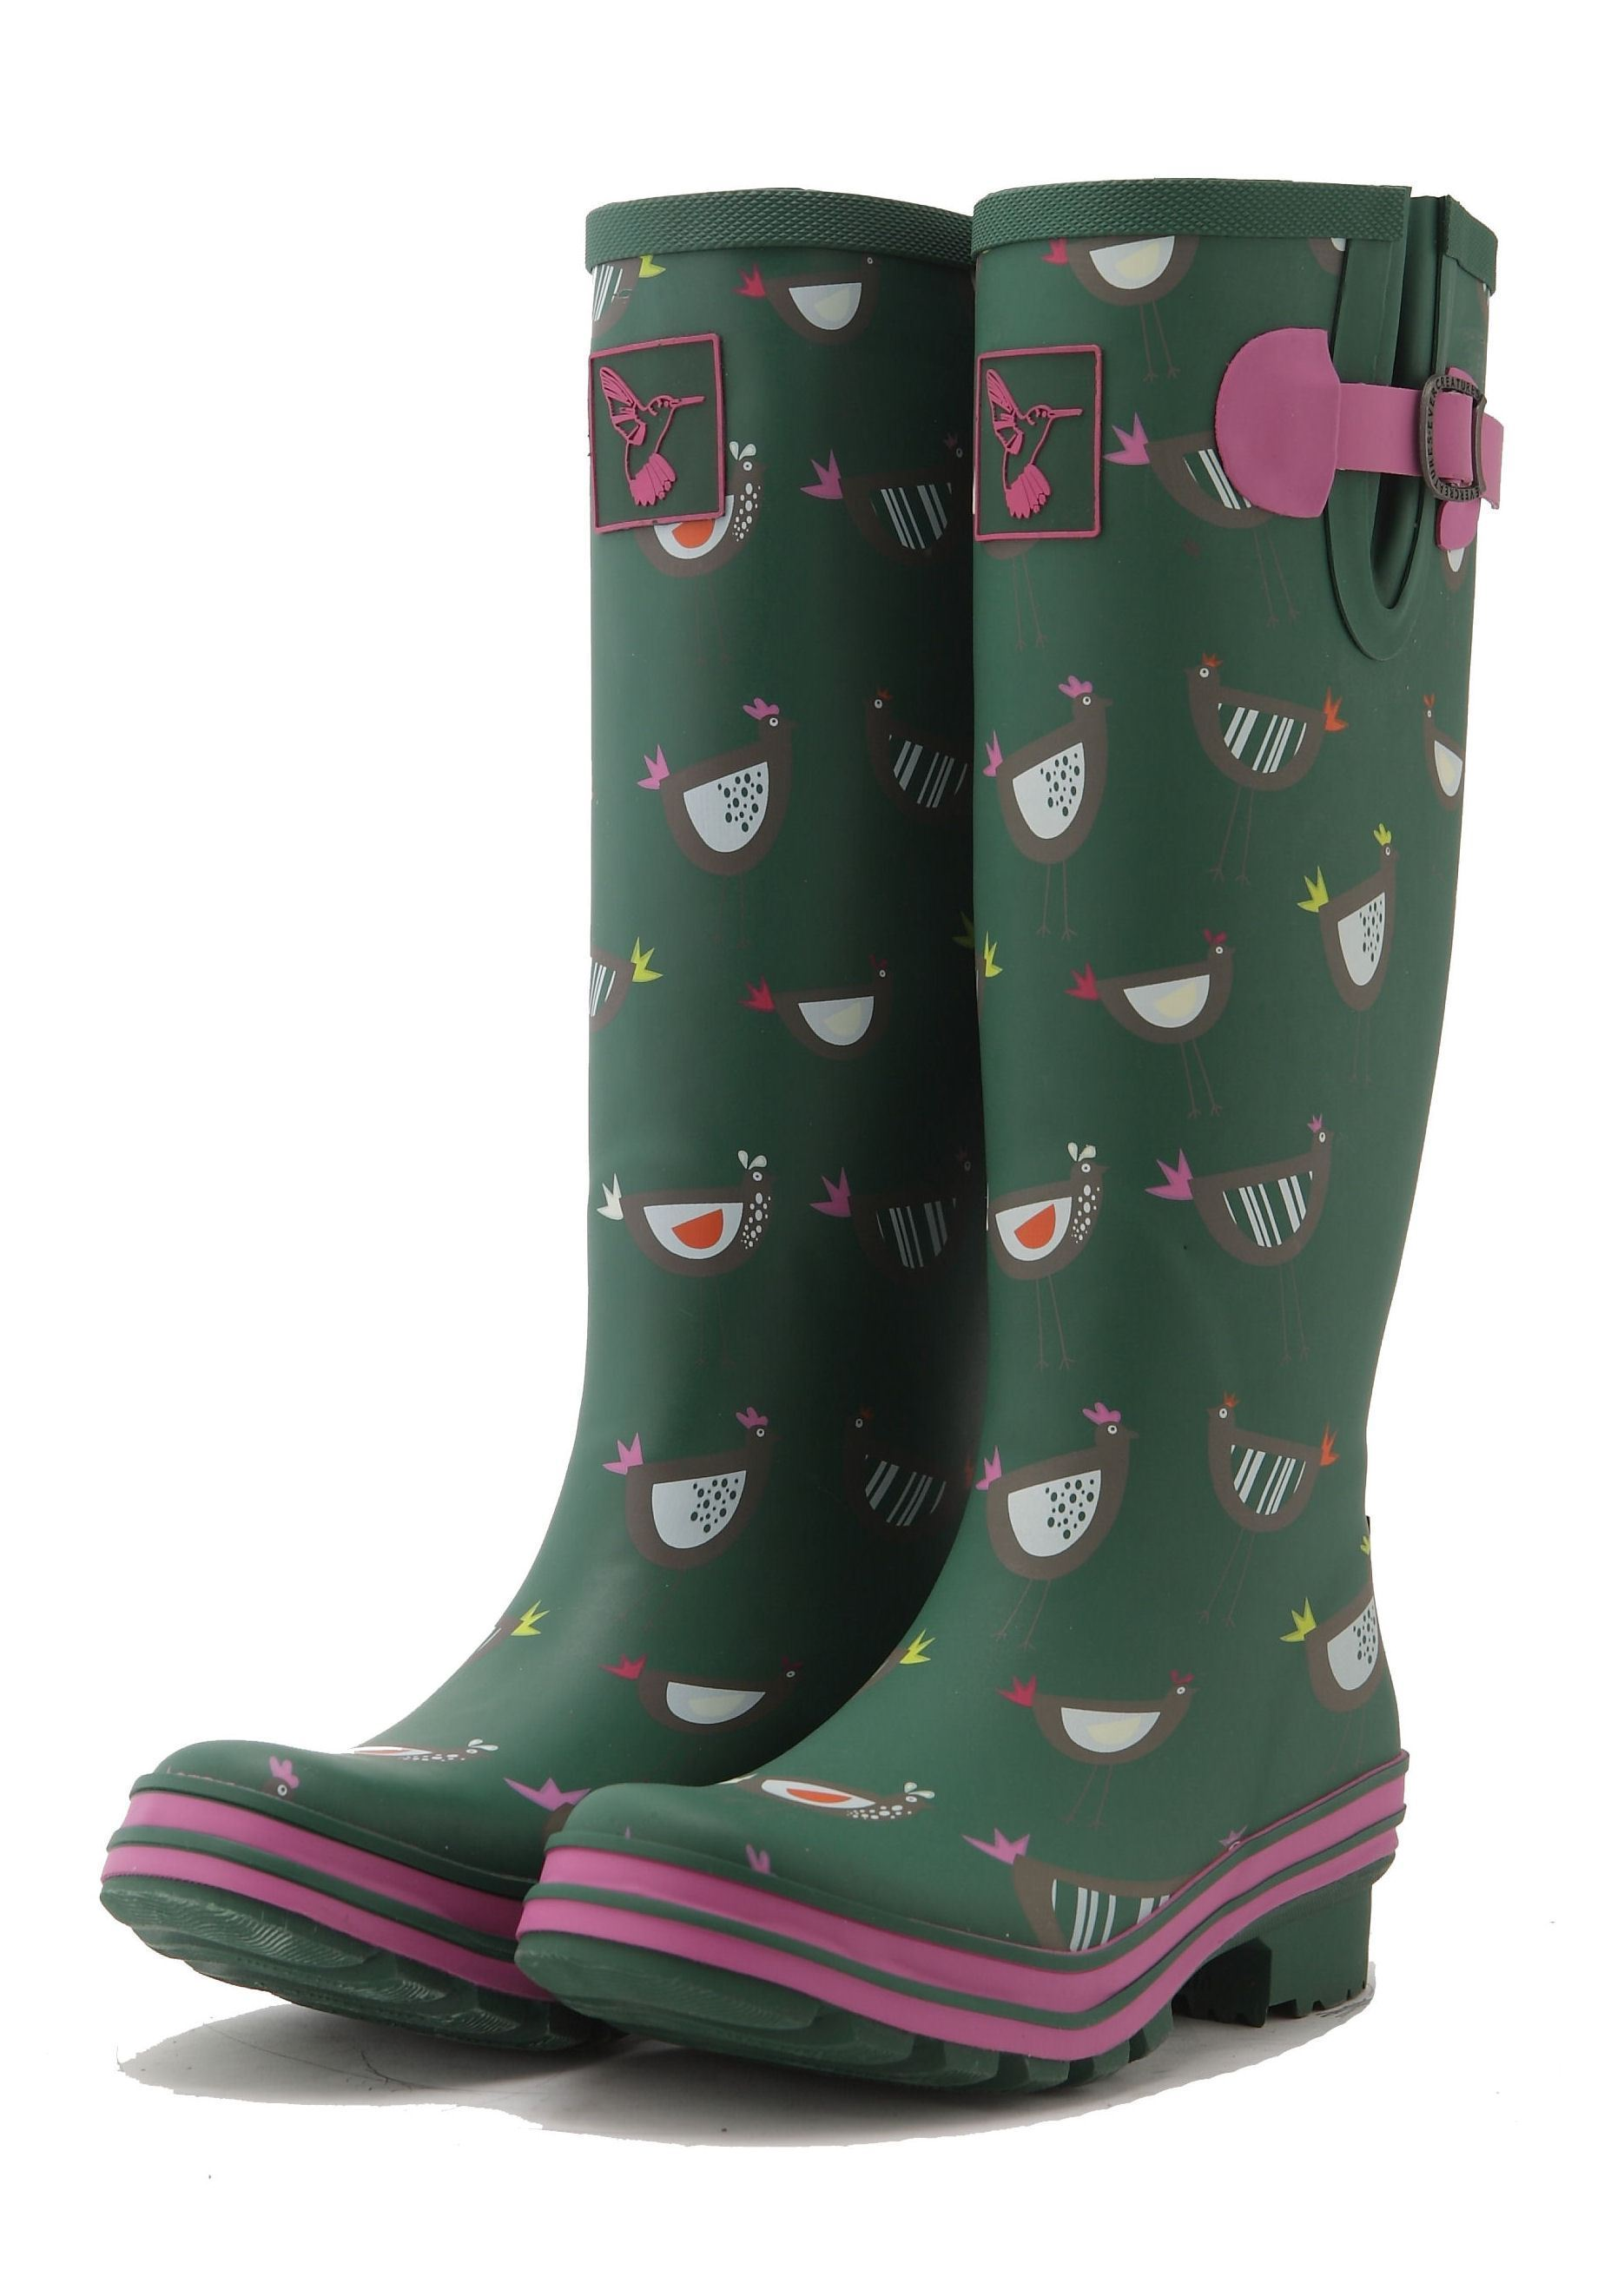 Evercreatures Chicken Tall Wellies - Evercreatures wellies